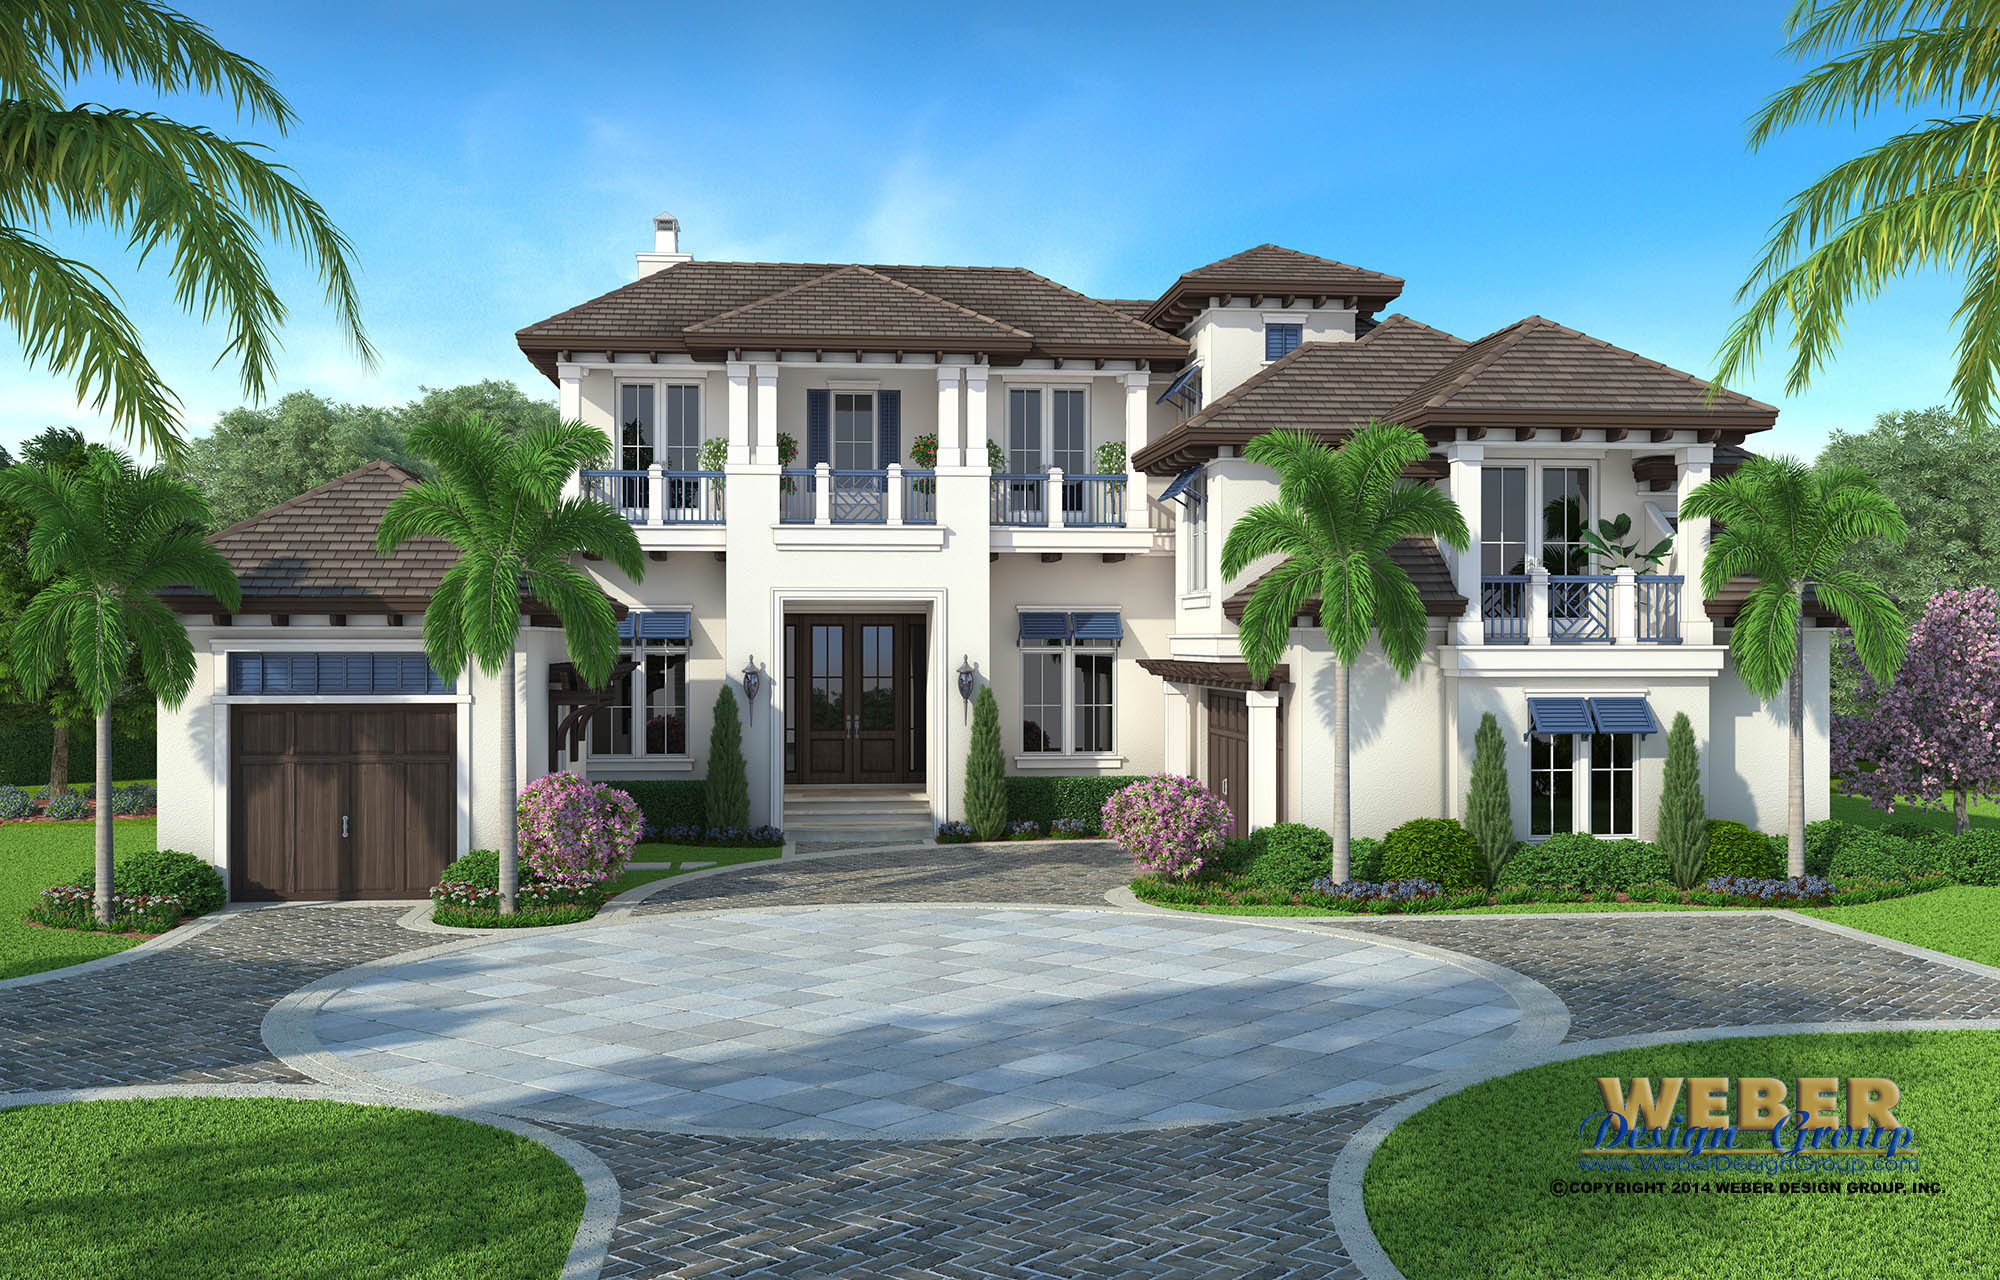 West indies home plan admiral model weber design group for Weber design